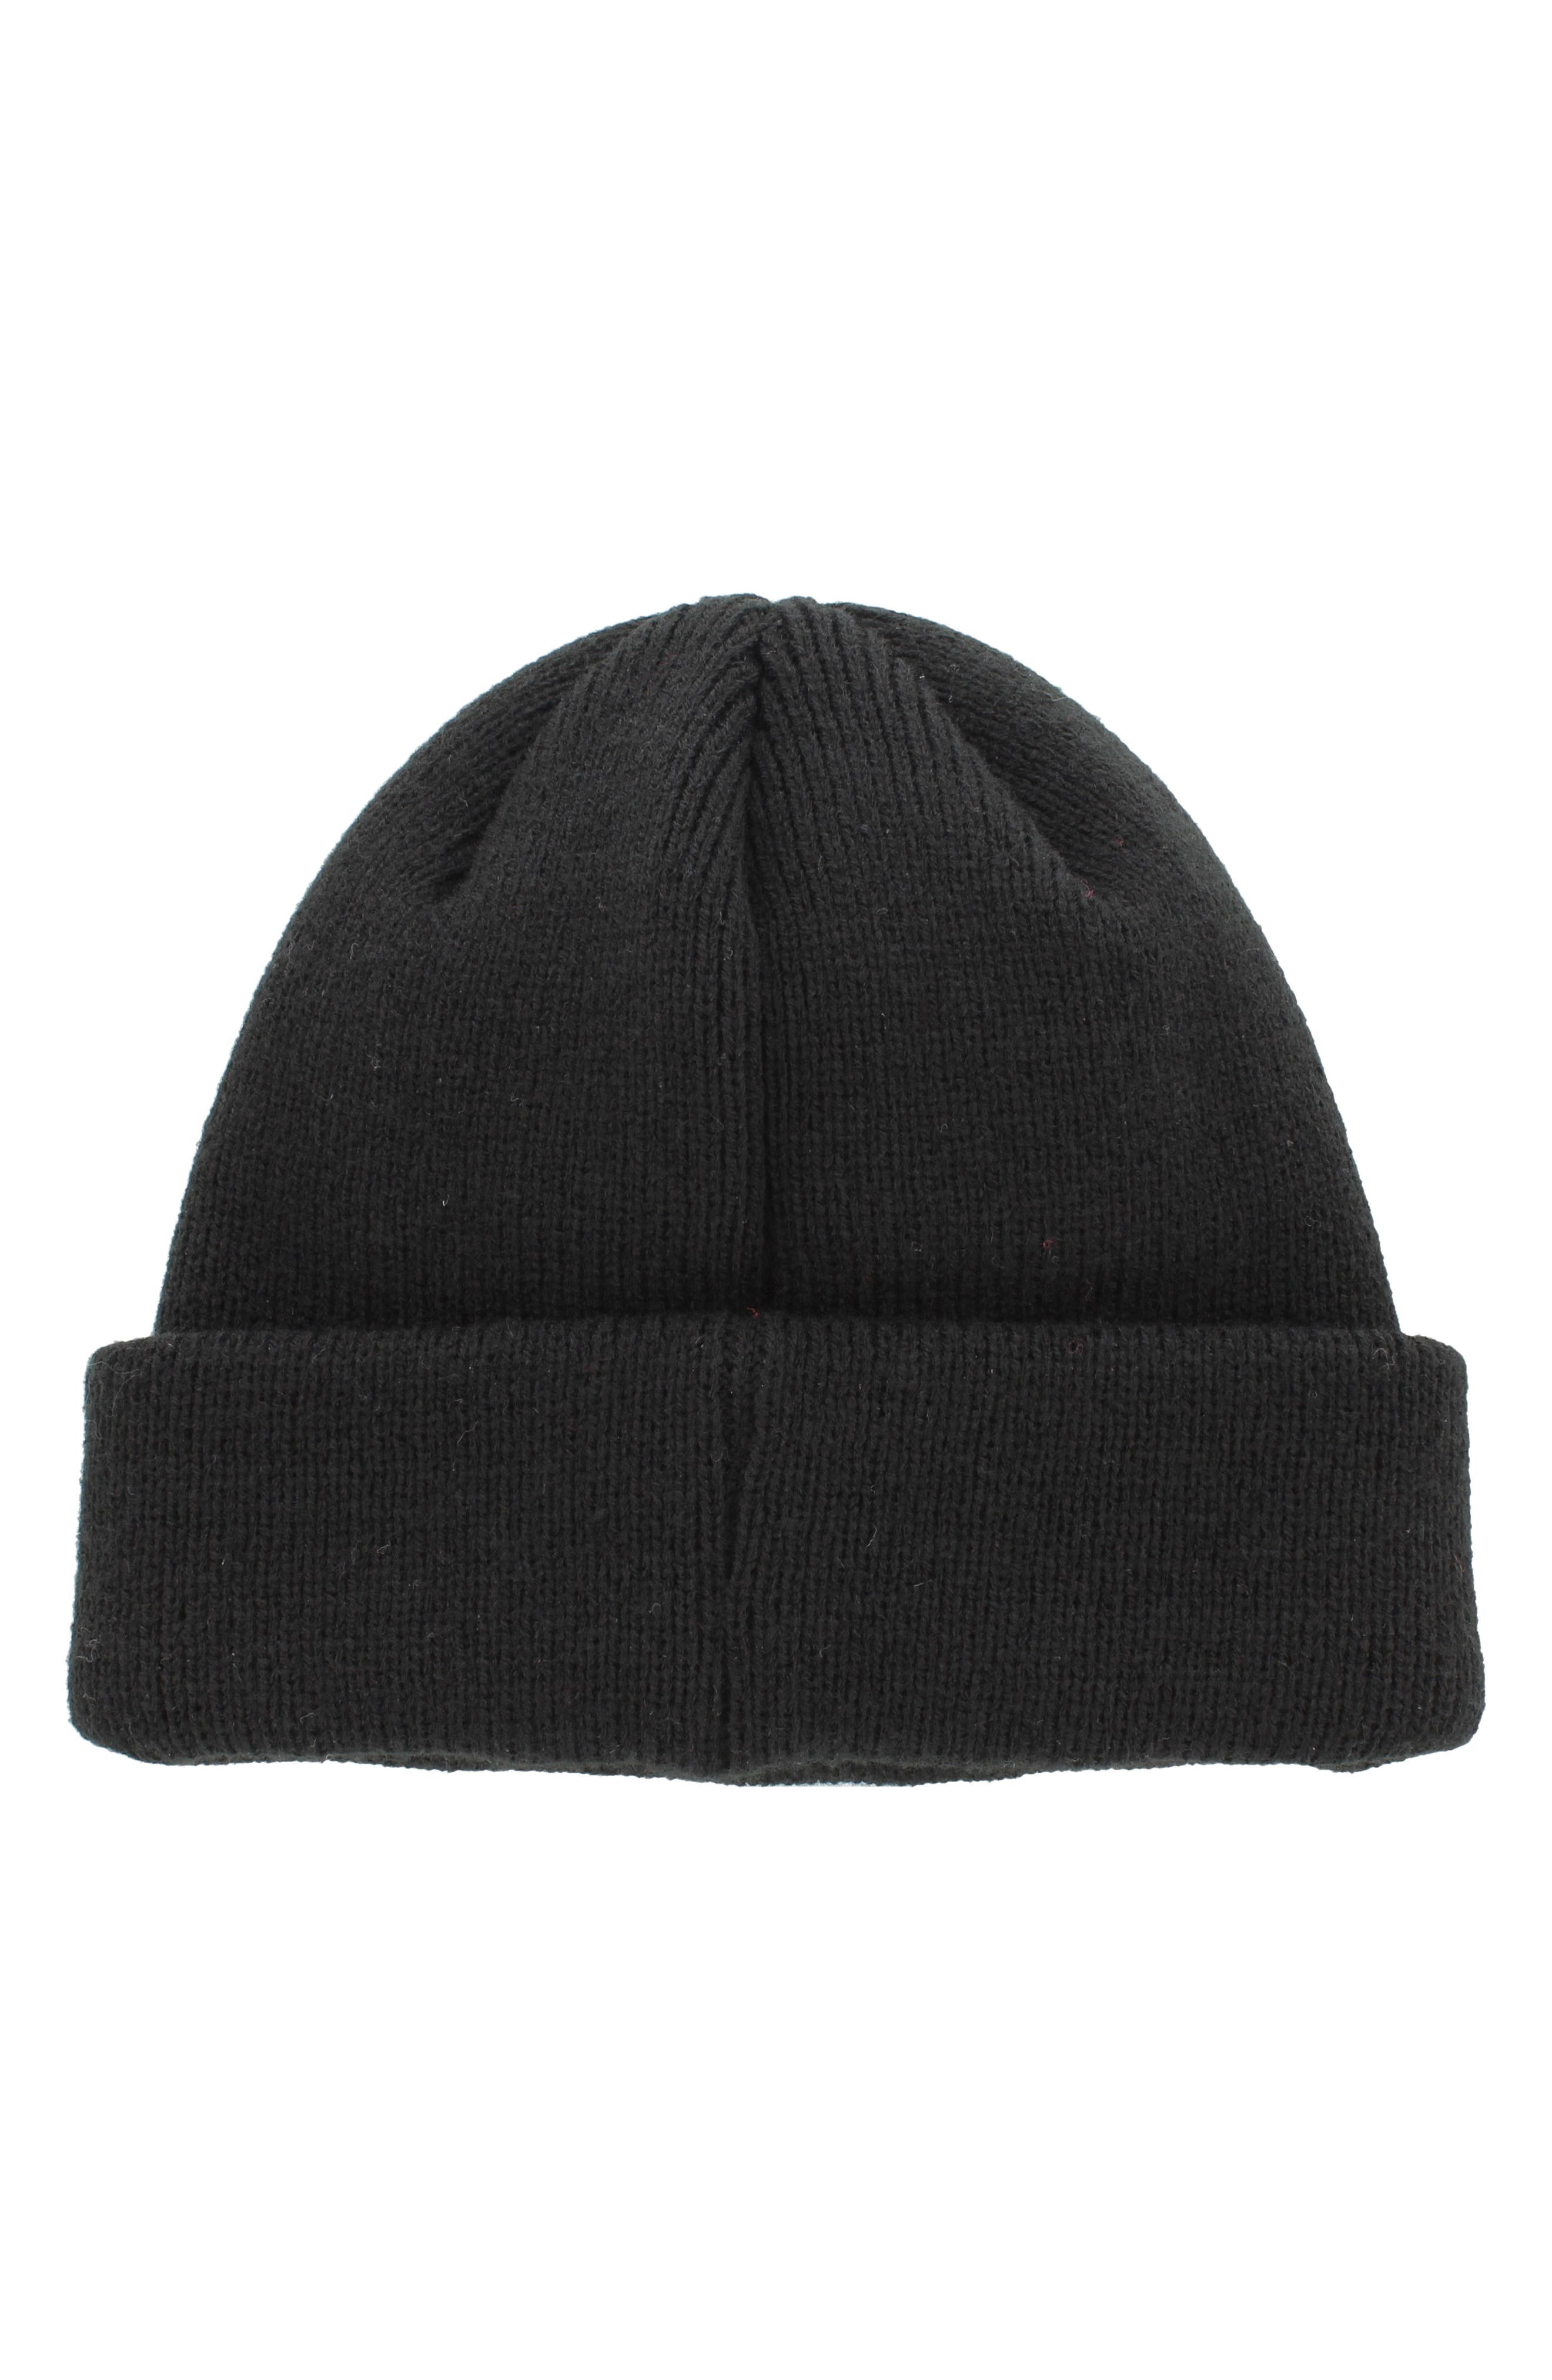 Trefoil II Knit Cap,                             Alternate thumbnail 3, color,                             001